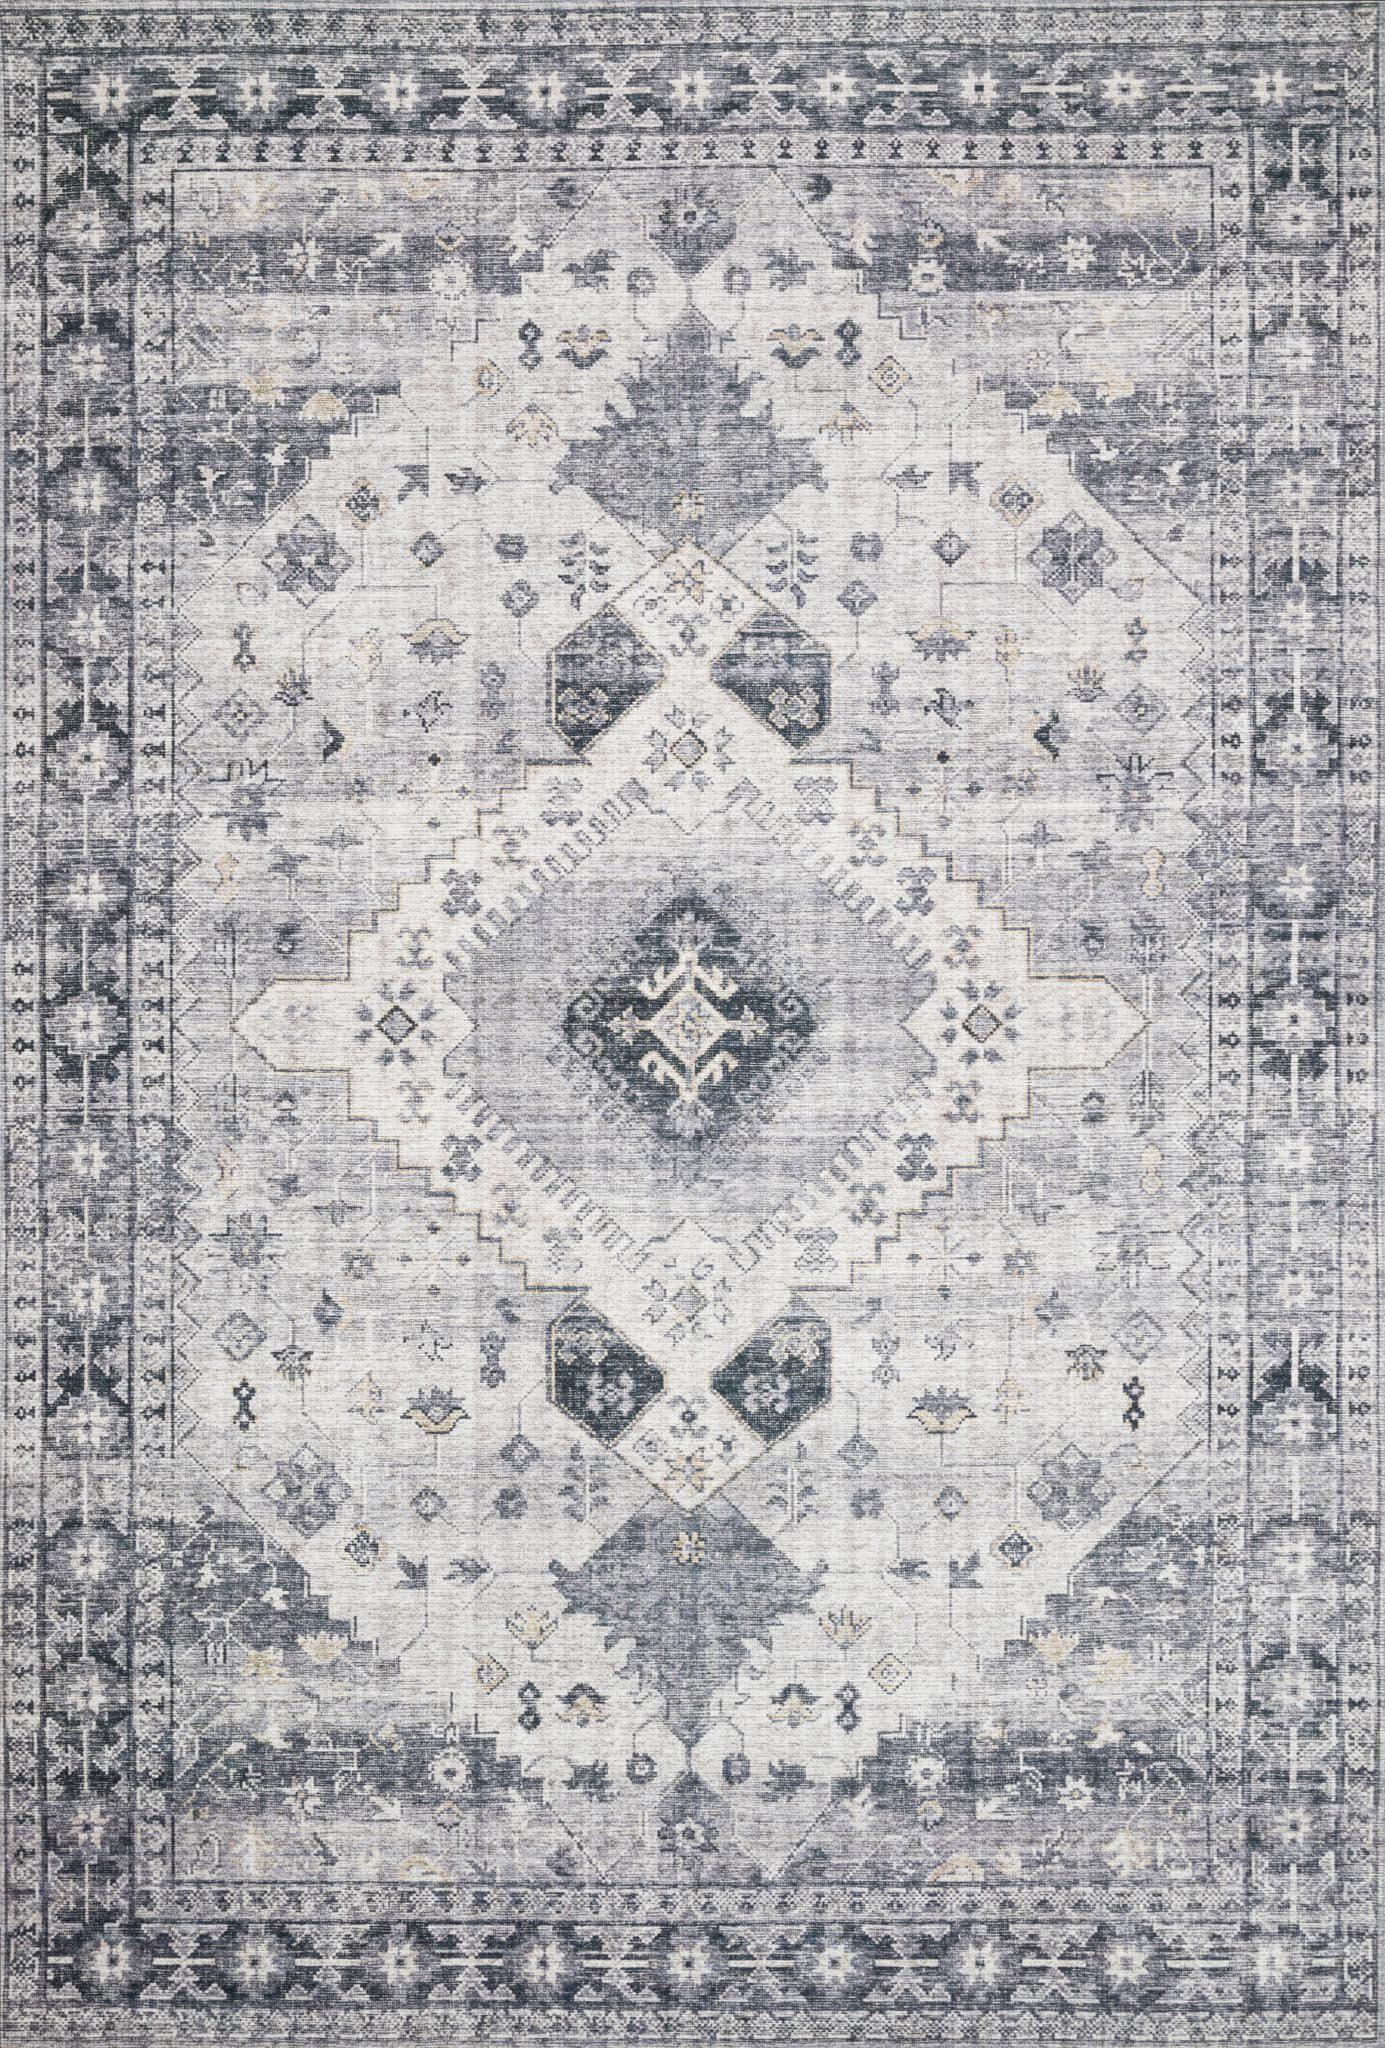 "Skye SKY-02 Silver / Grey Area Rug-Area Rug-Loloi-1'-6"" x 1'-6"" Square-The Rug Truck"